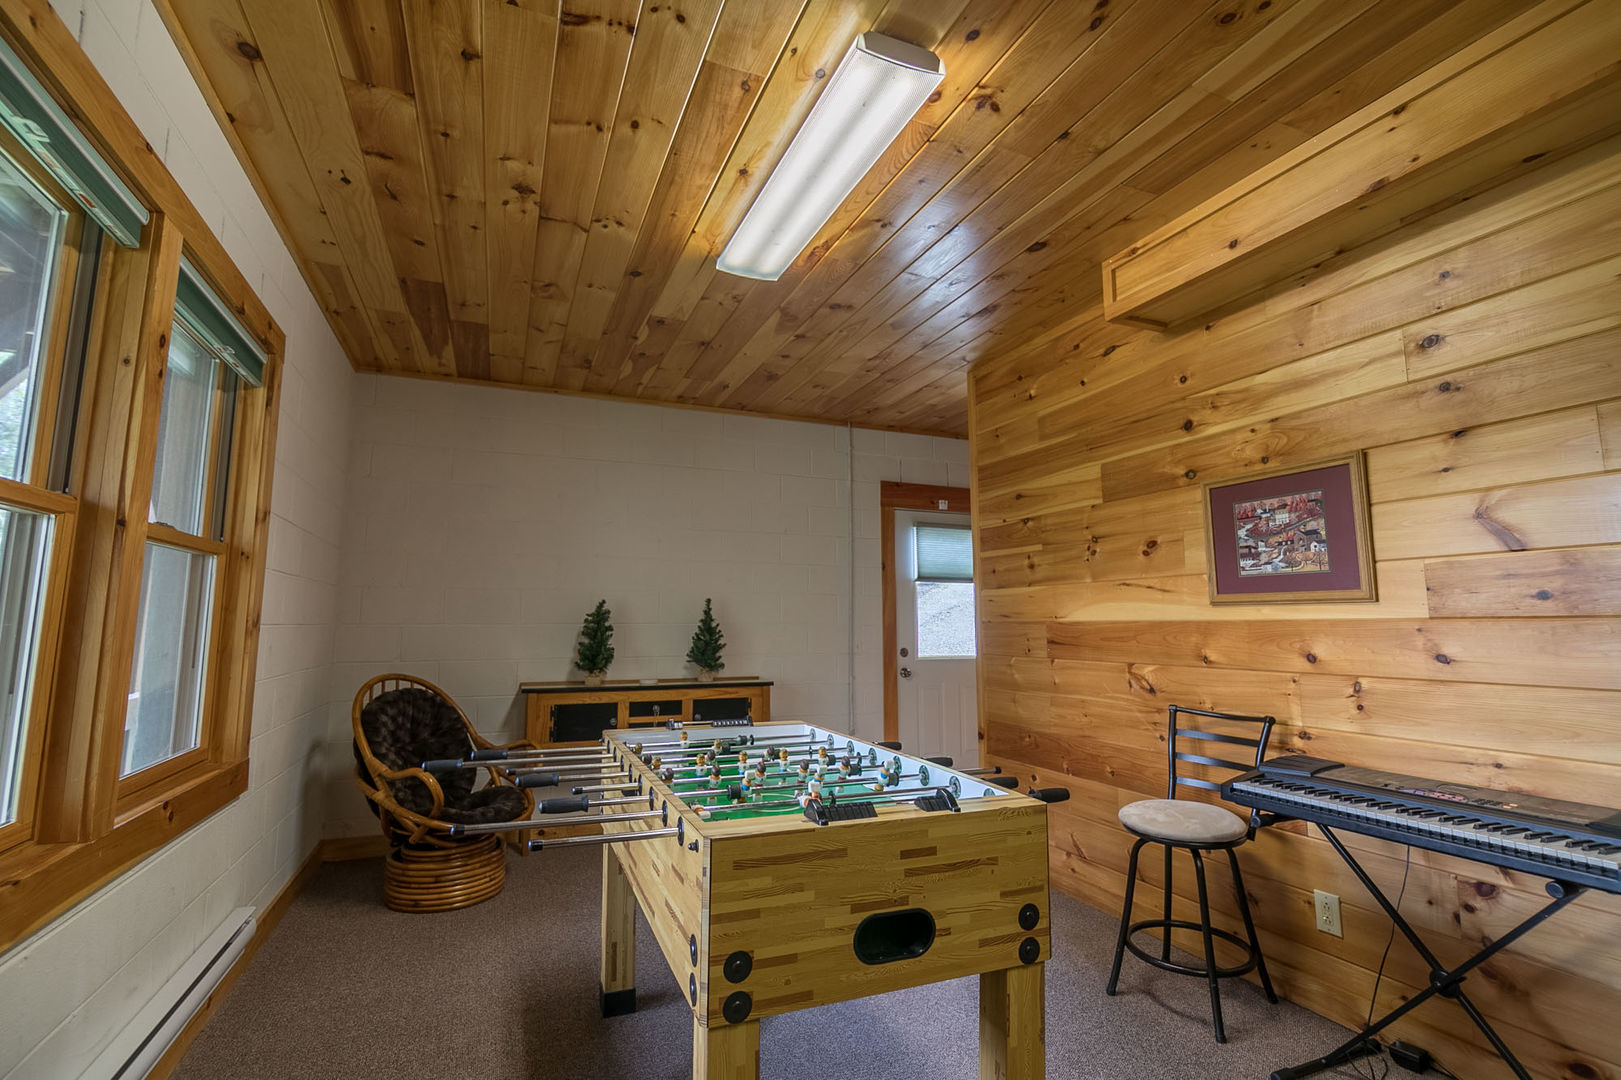 Lower level game area with Foosball table